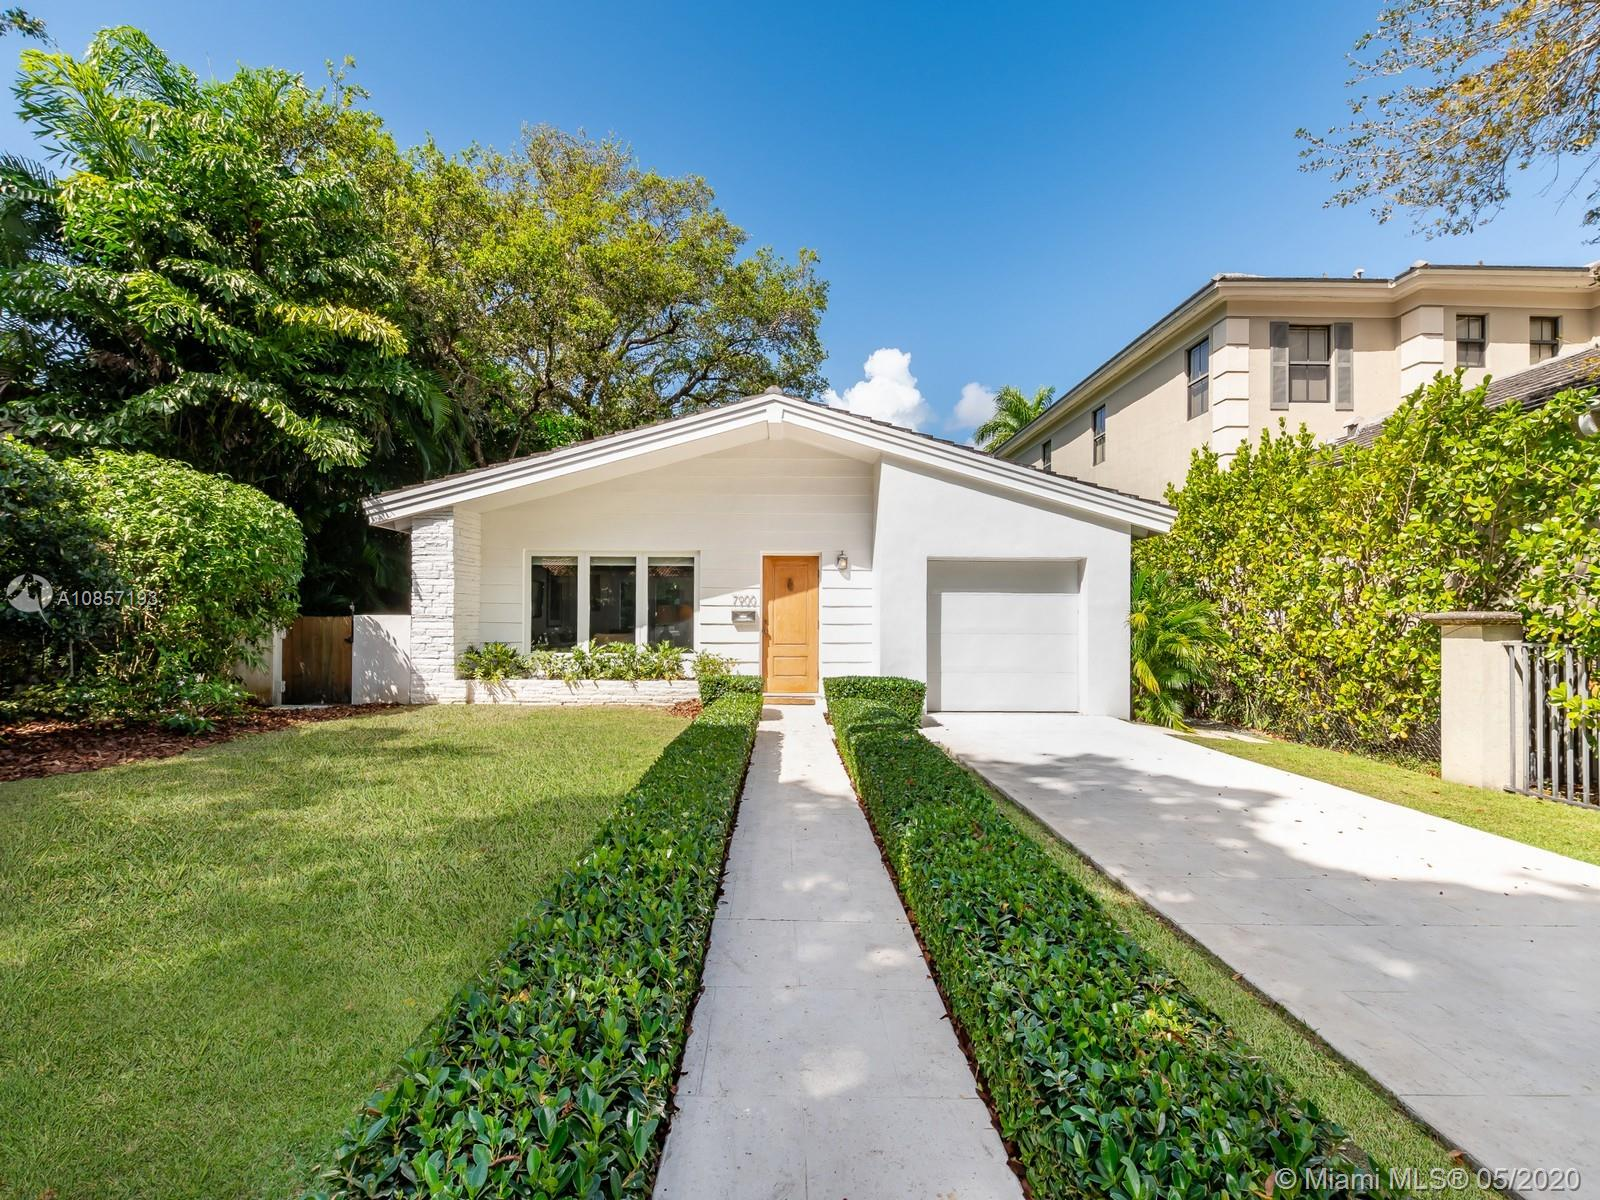 7900 Mindello St, Coral Gables, Florida 33143, 2 Bedrooms Bedrooms, ,2 BathroomsBathrooms,Residential,For Sale,7900 Mindello St,A10857193